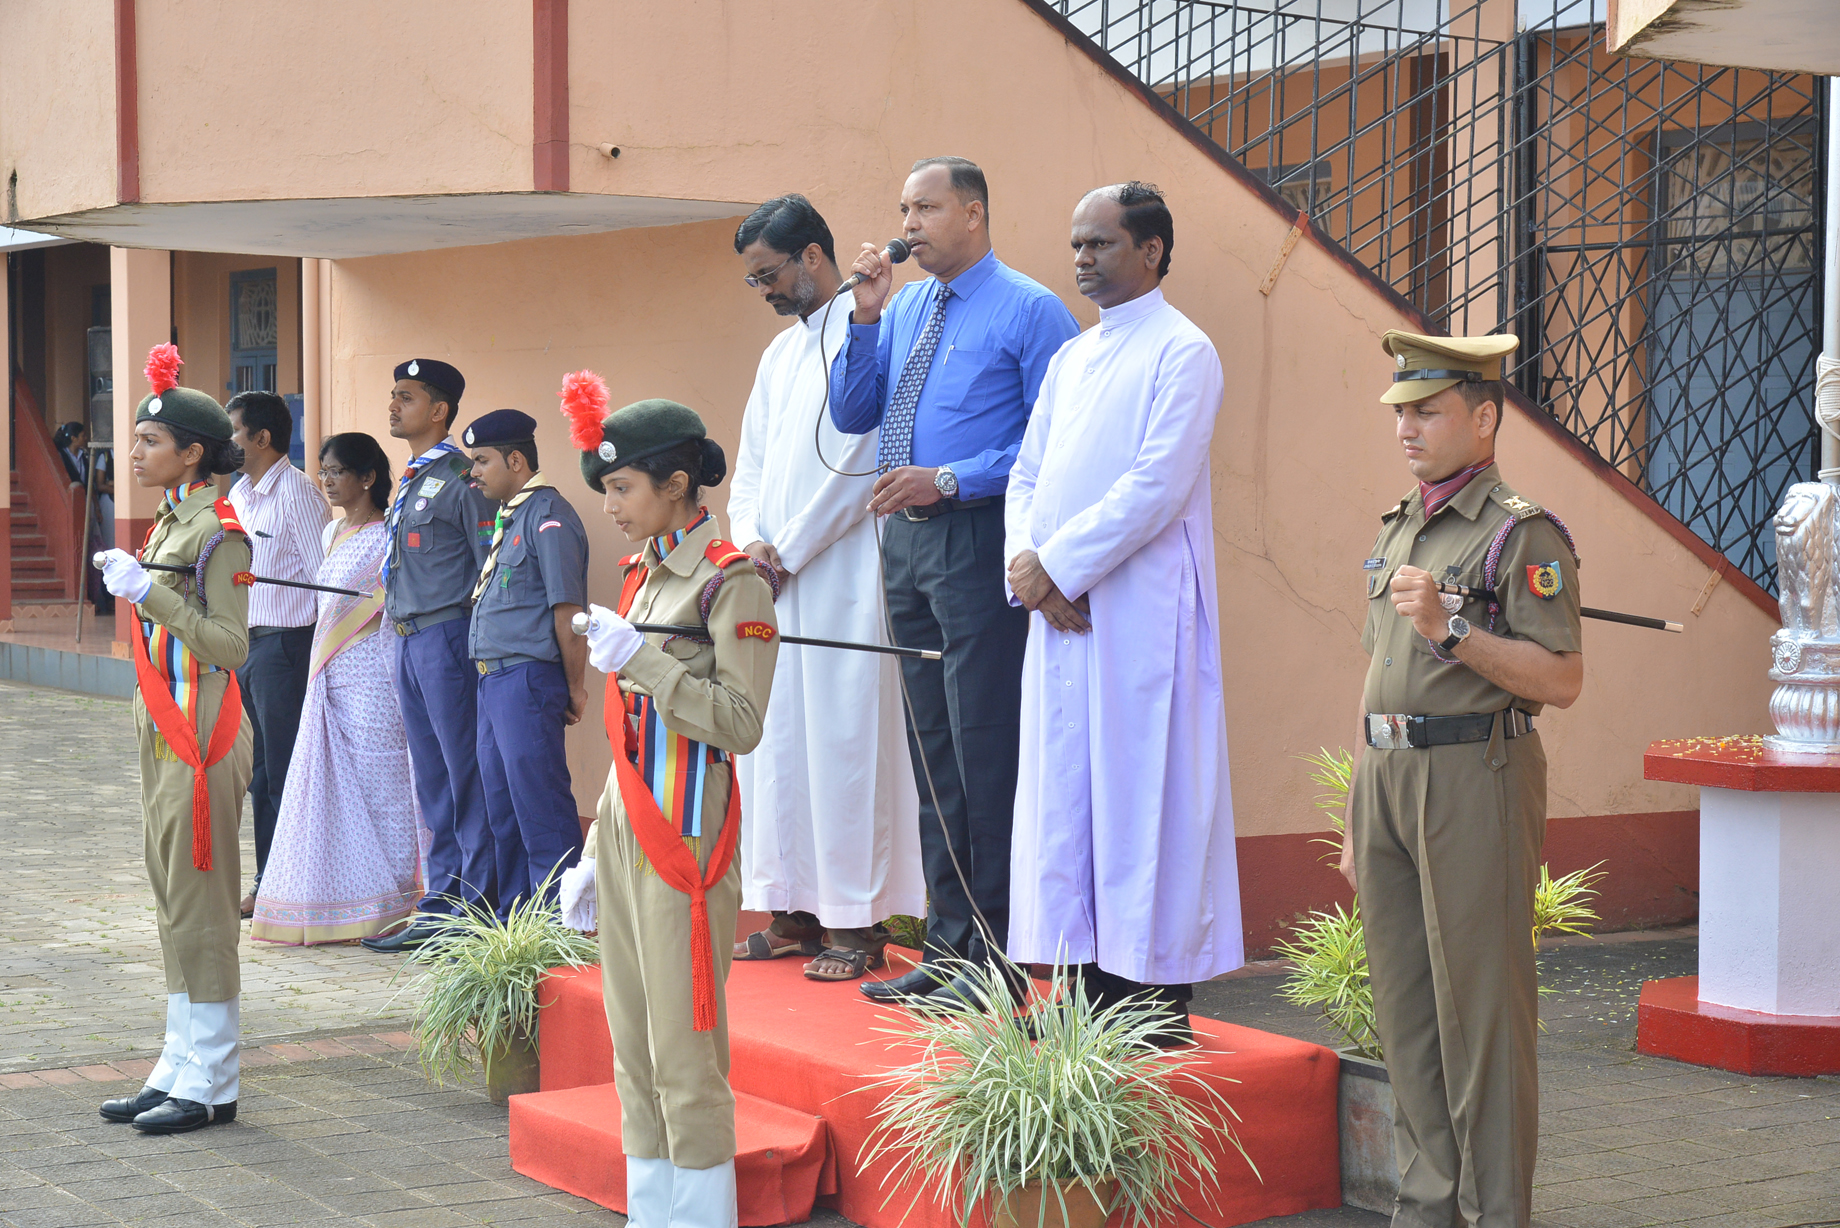 71st Independence Day celebrated at St Philomana College with gaiety and patriotic fervour